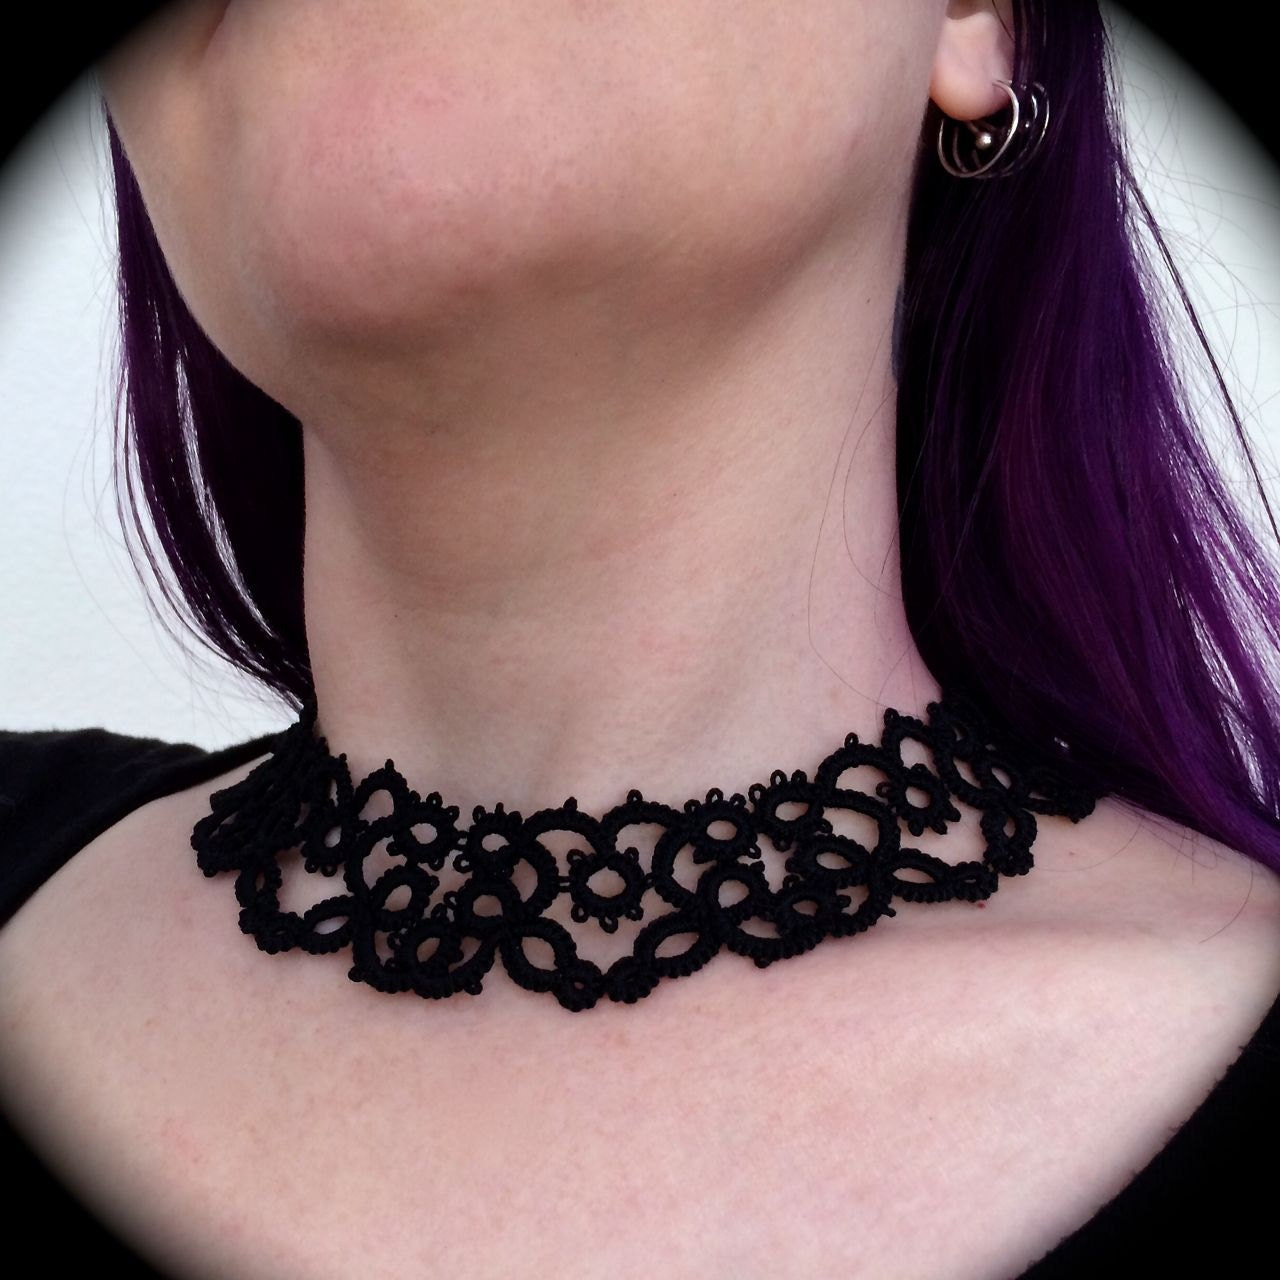 https://www.etsy.com/listing/180700803/tatted-lace-choker-necklace-wandering?